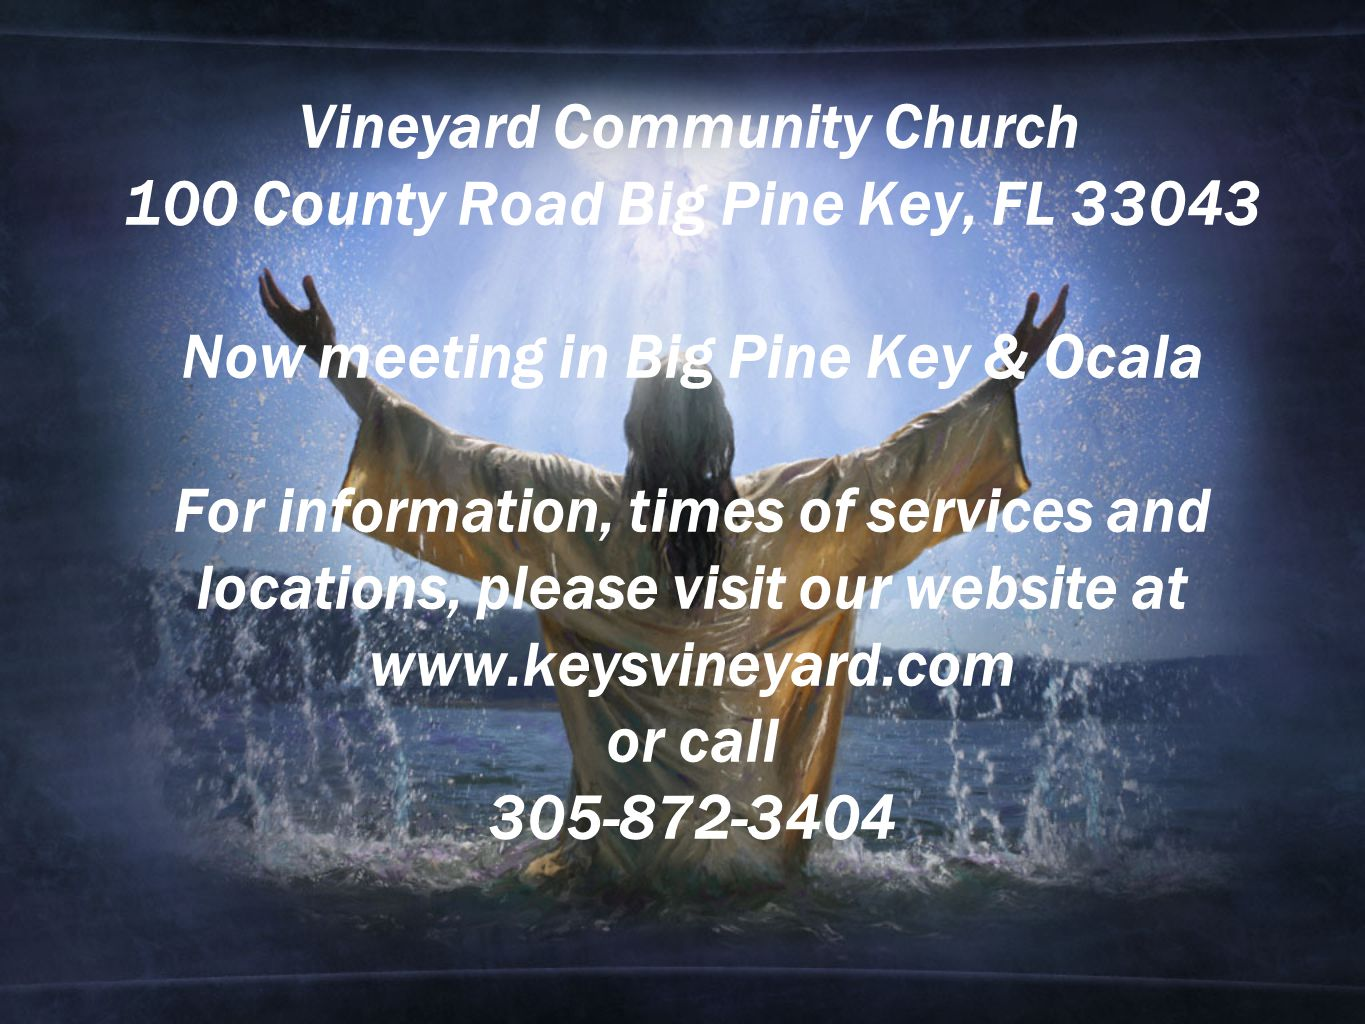 Vineyard Community Church 100 County Road Big Pine Key, FL 33043 Now meeting in Big Pine Key & Ocala For information, times of services and locations, please visit our website at www.keysvineyard.com or call 305-872-3404